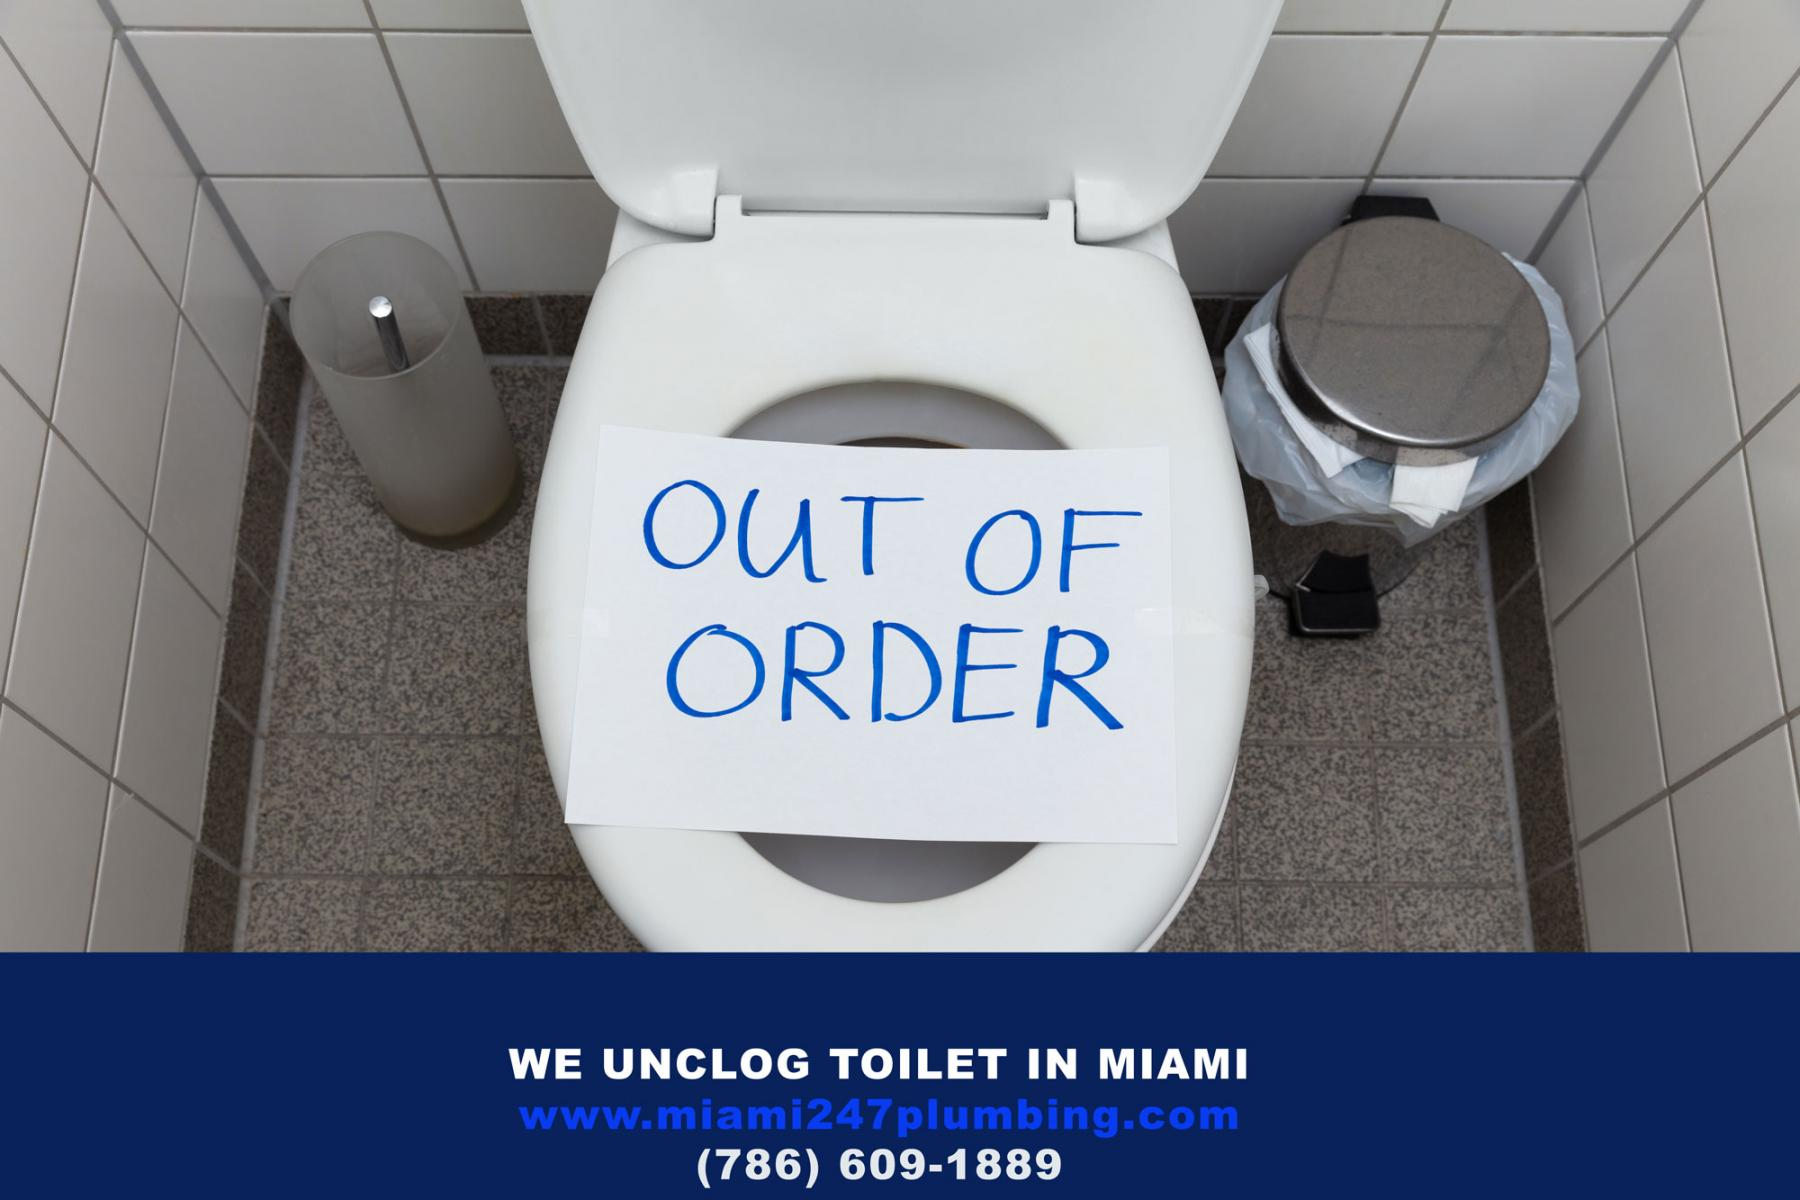 Unclog Toilet in Miami